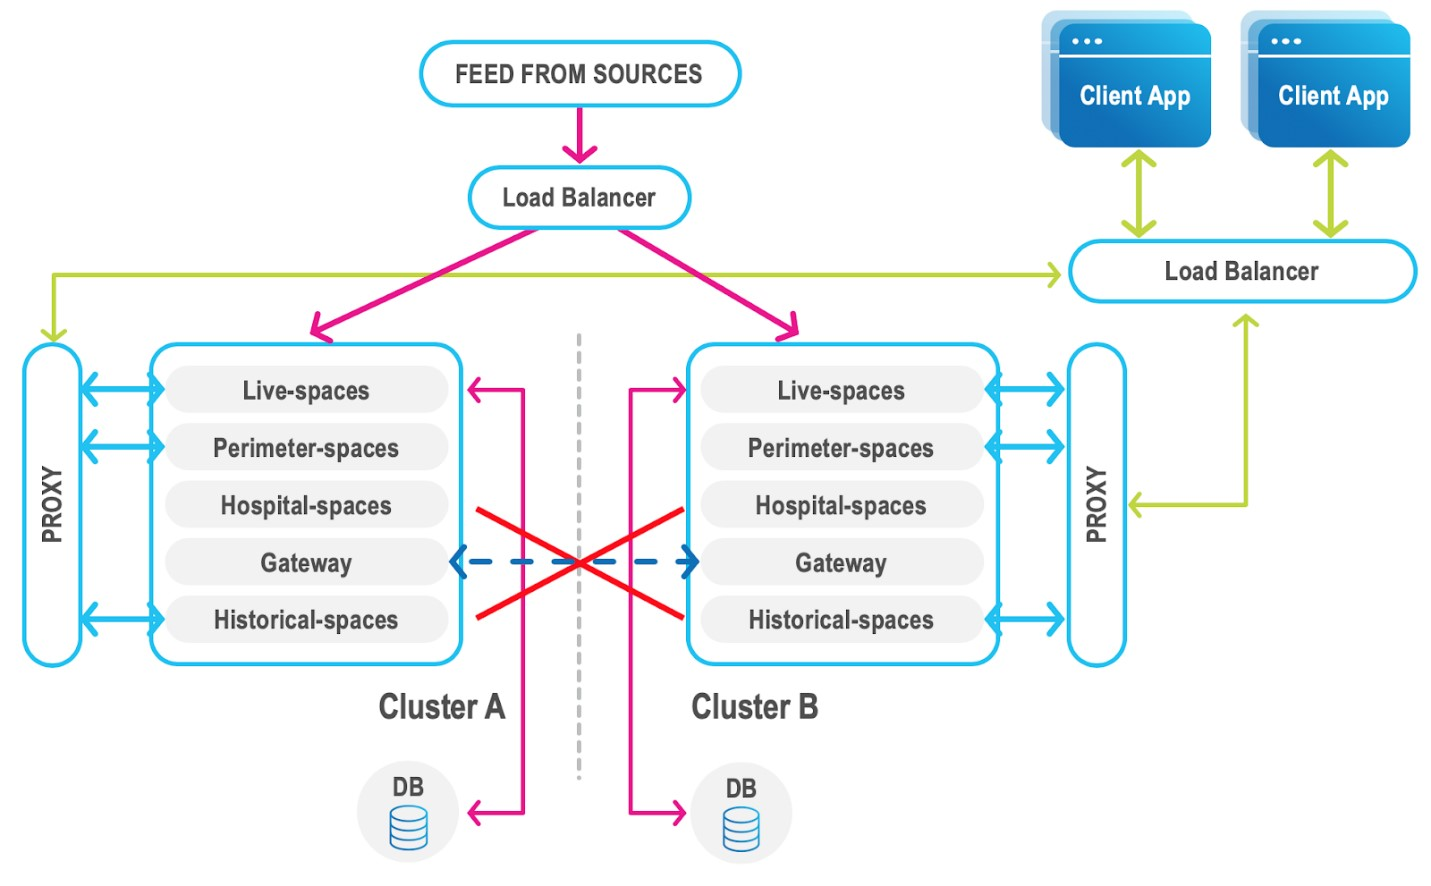 FMEA – Slow Recovery Due to Limited Bandwidth Between Sites